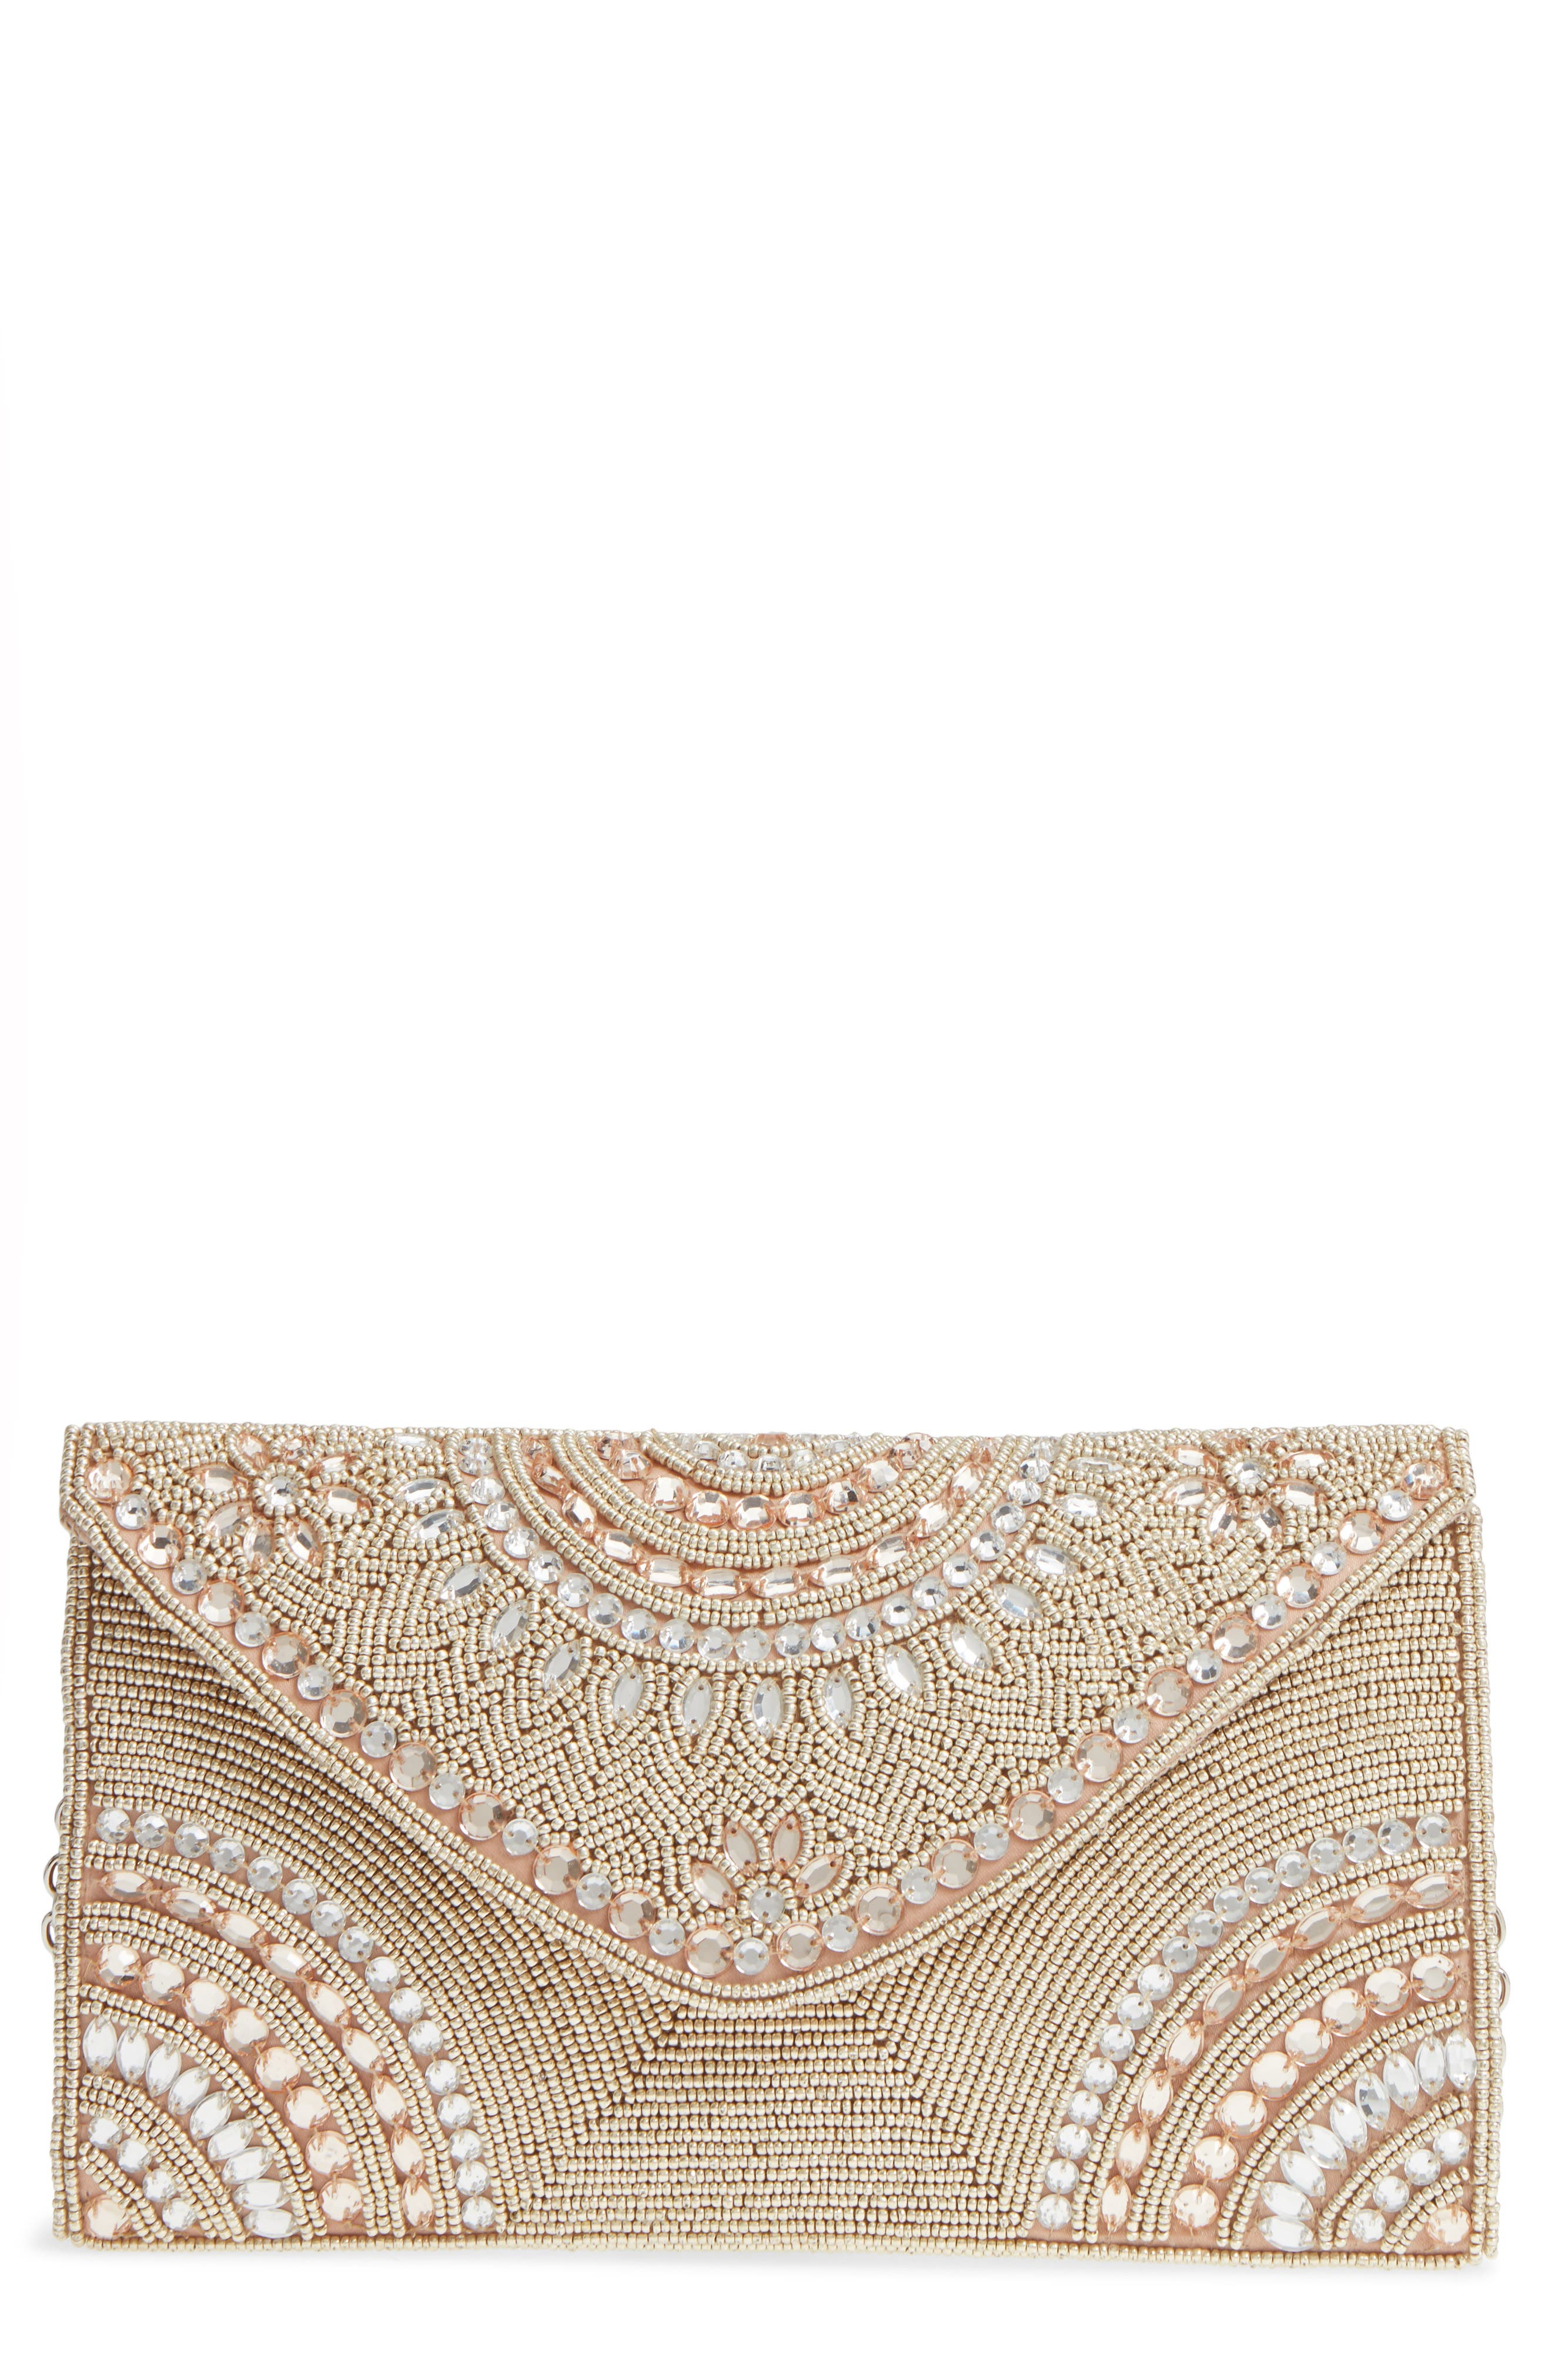 Alhambra Beaded Envelope Clutch,                             Main thumbnail 1, color,                             Blush